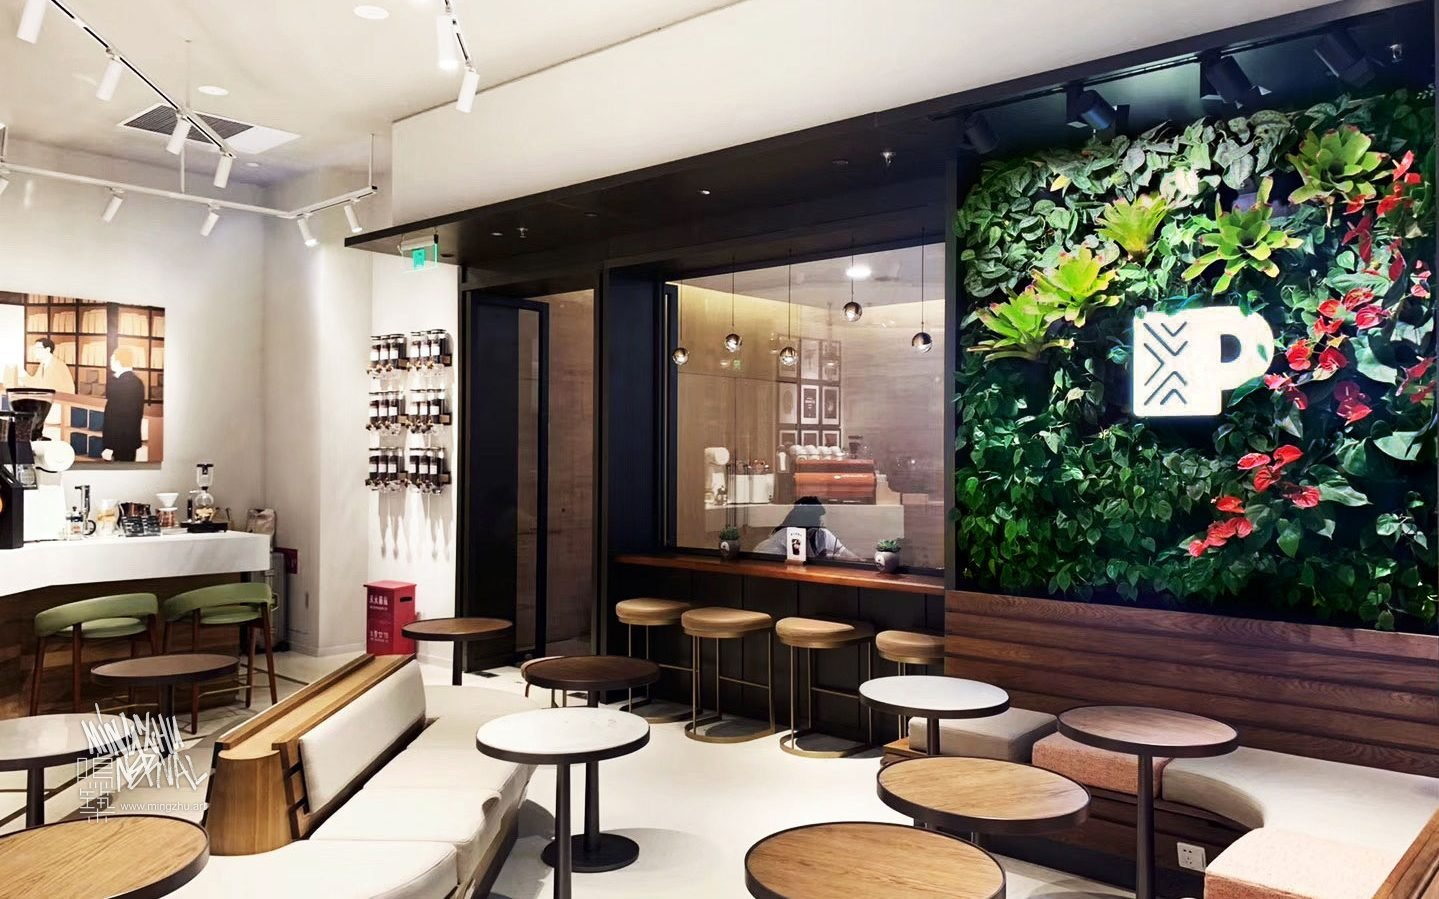 At Mingzhu Nerval, we thrive at creating the most beautiful vertical gardens in the world. For Peet's Coffee, we created a Californian living wall design – Hangzhou, 2019.